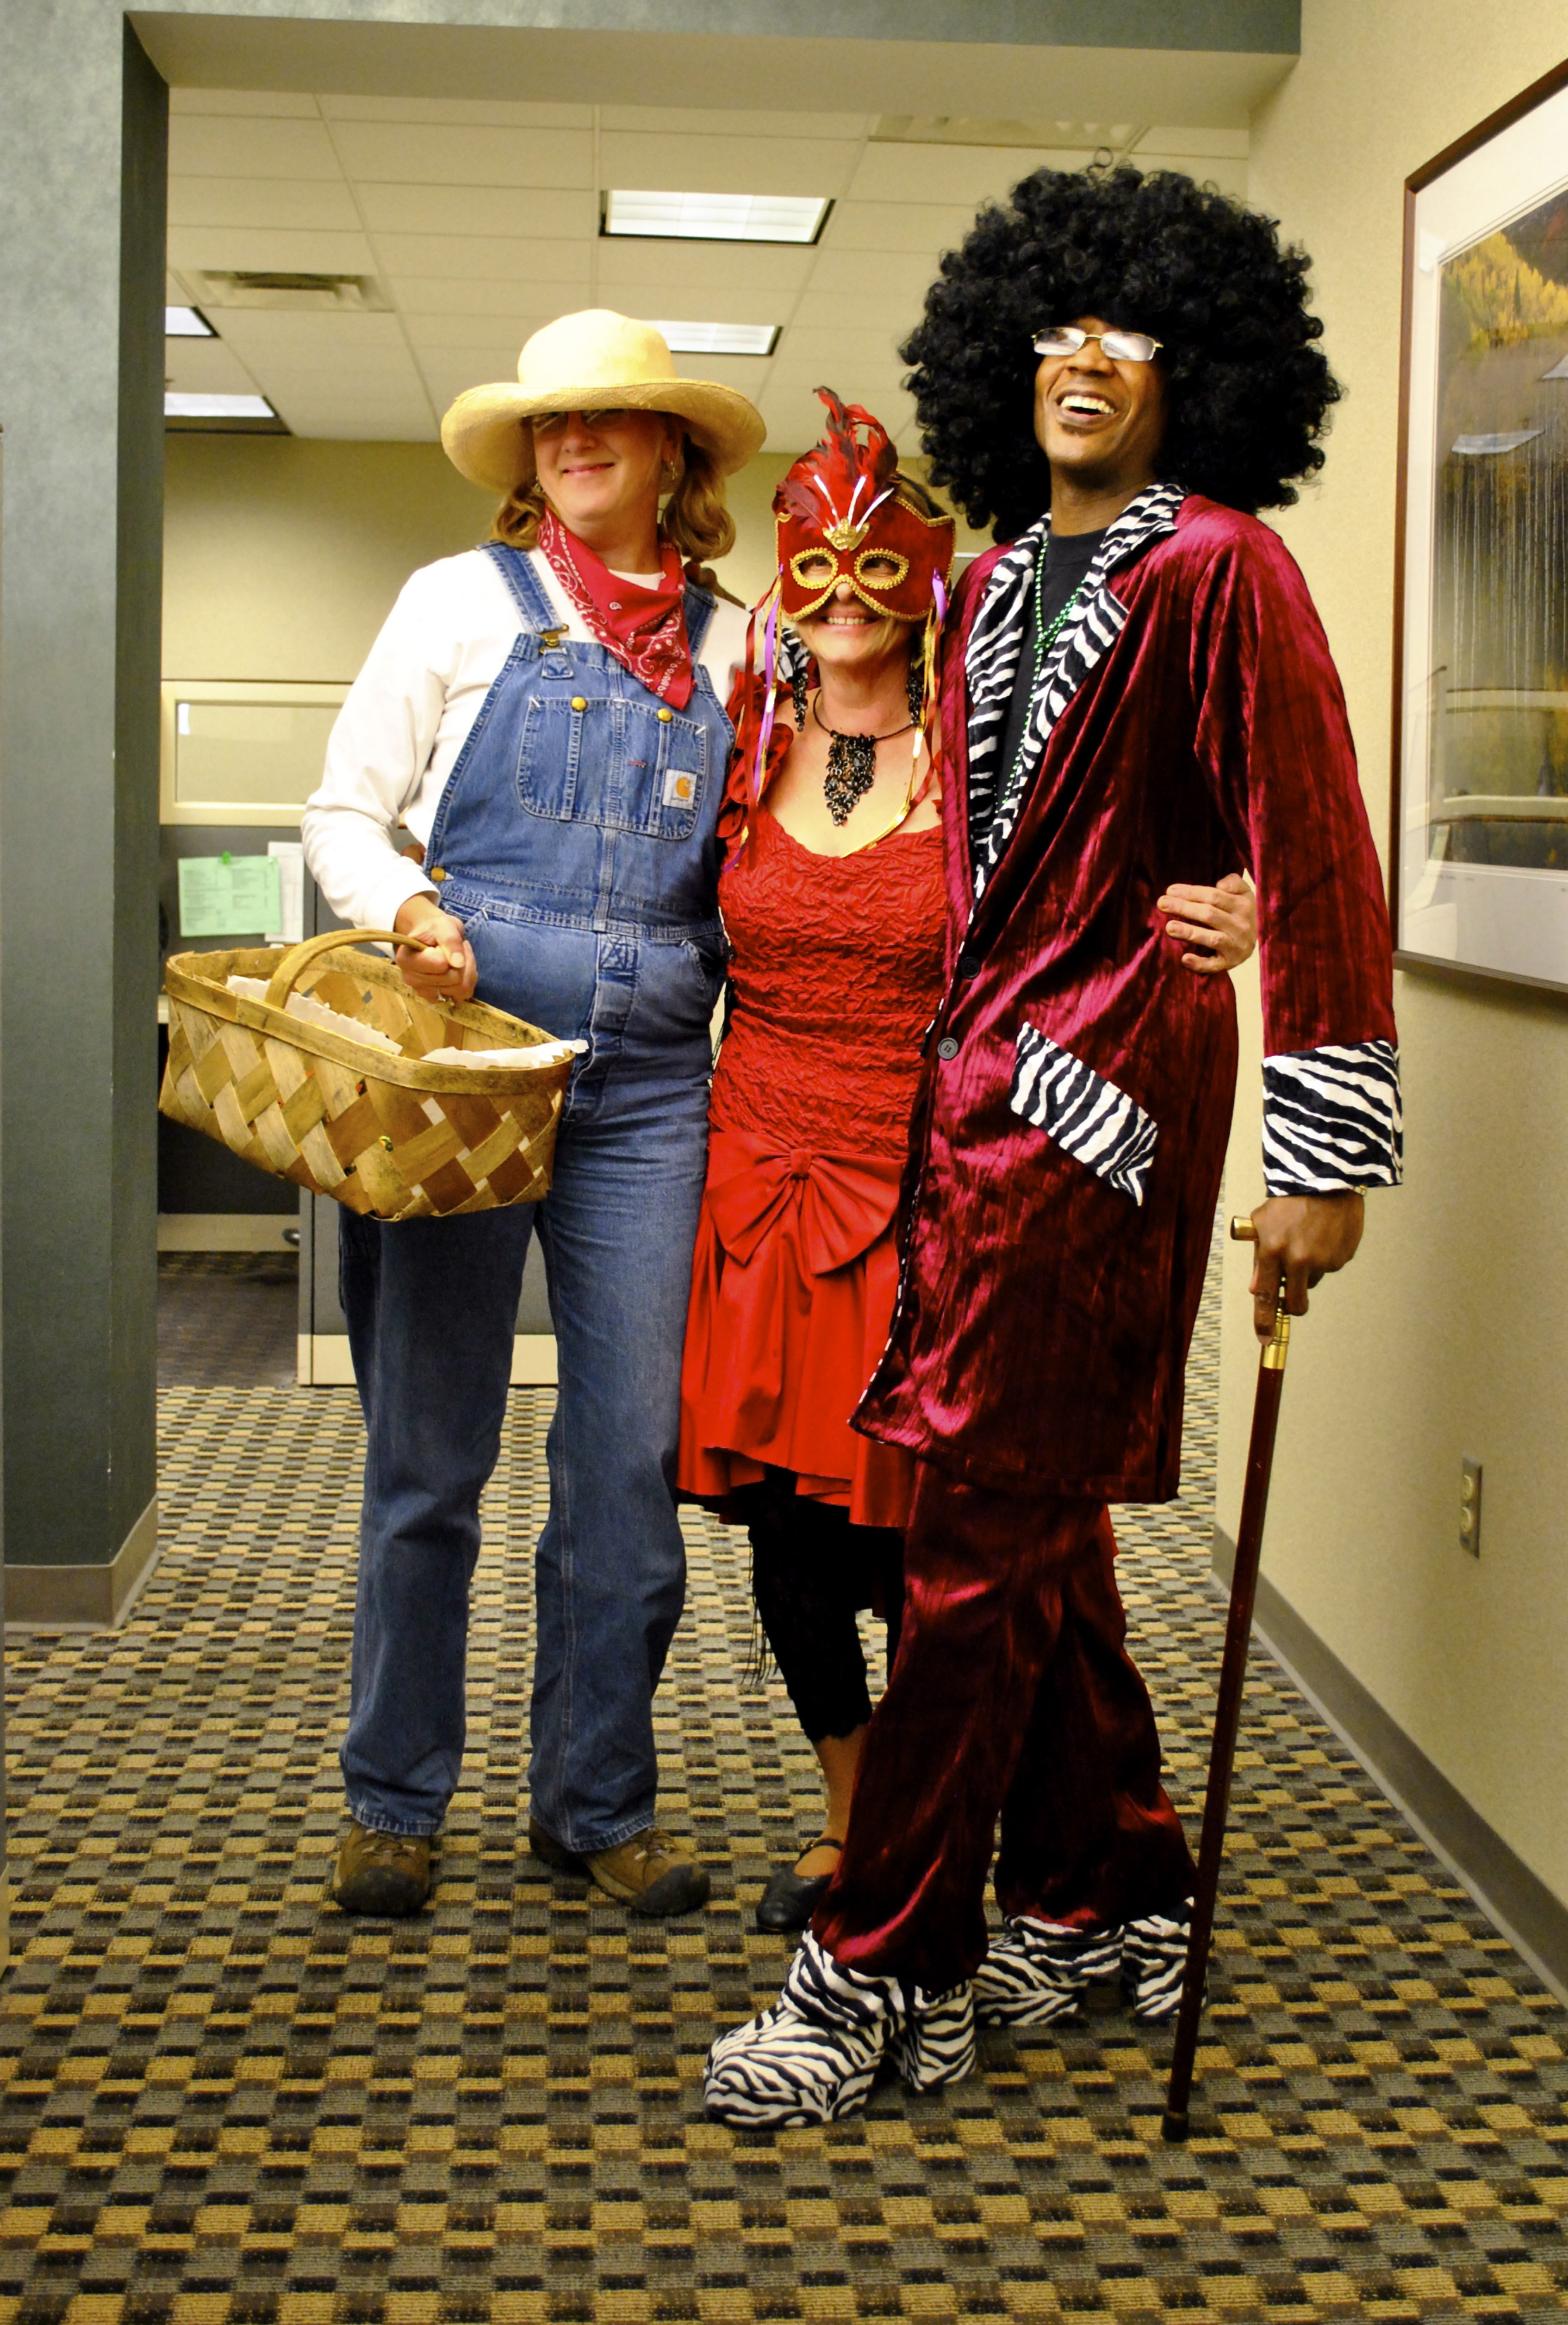 Photo of WSU employees dressed up for Halloween.